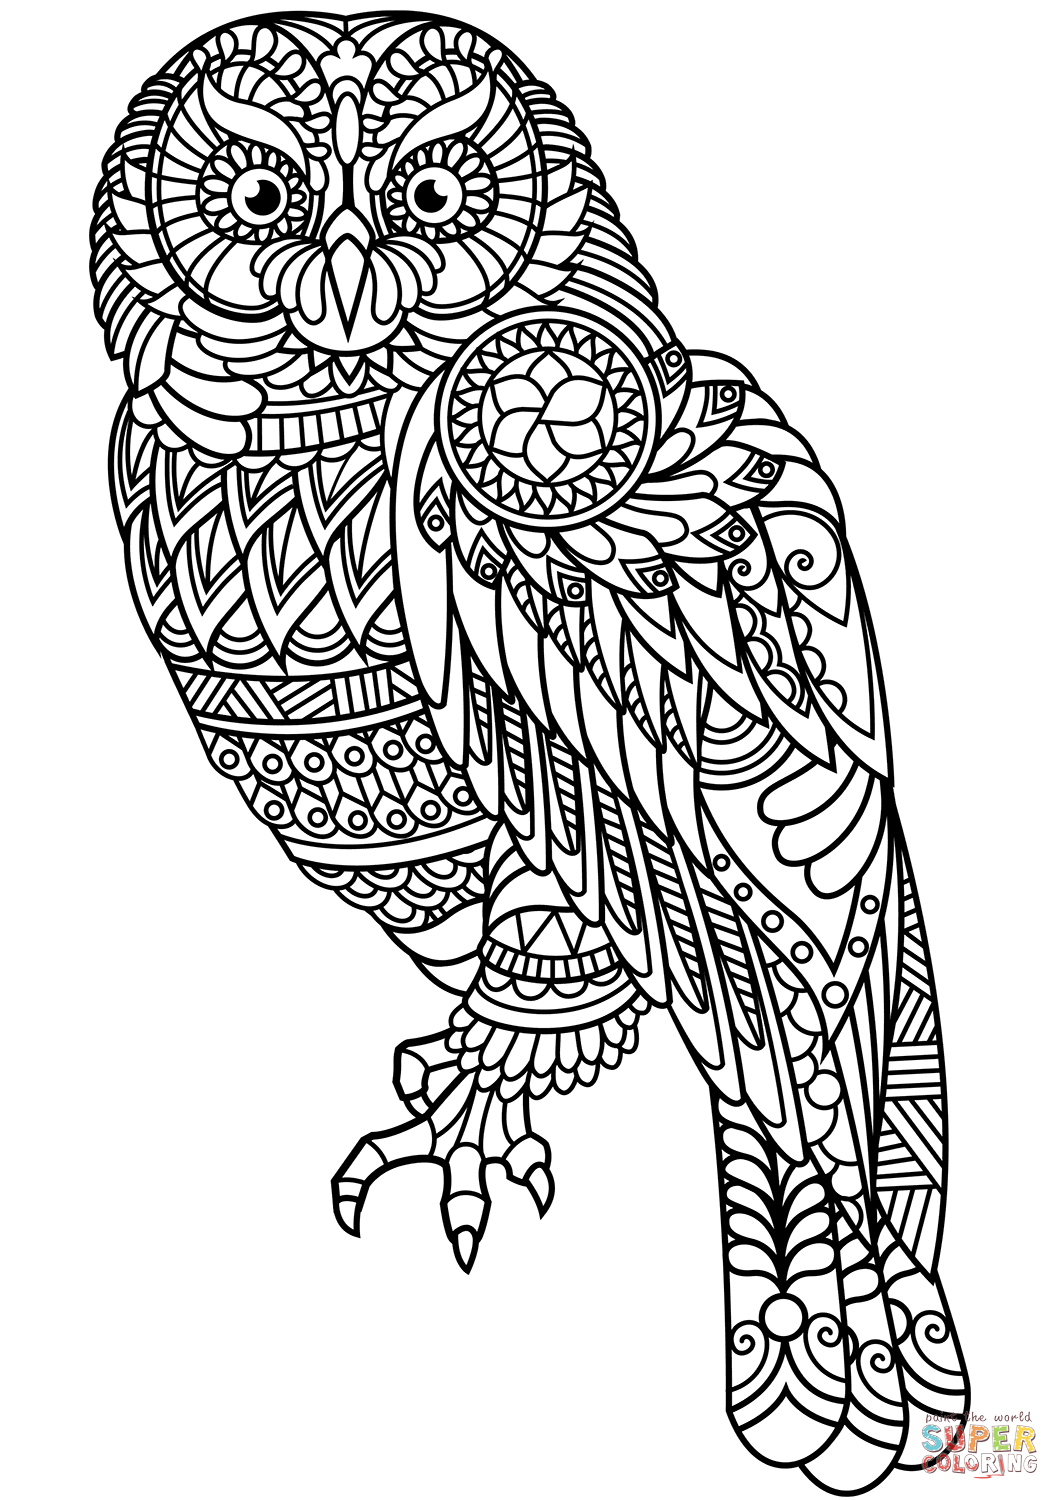 zentangle colouring pages animals zentangle horse by evaclifton on deviantart zen tangled colouring pages animals zentangle